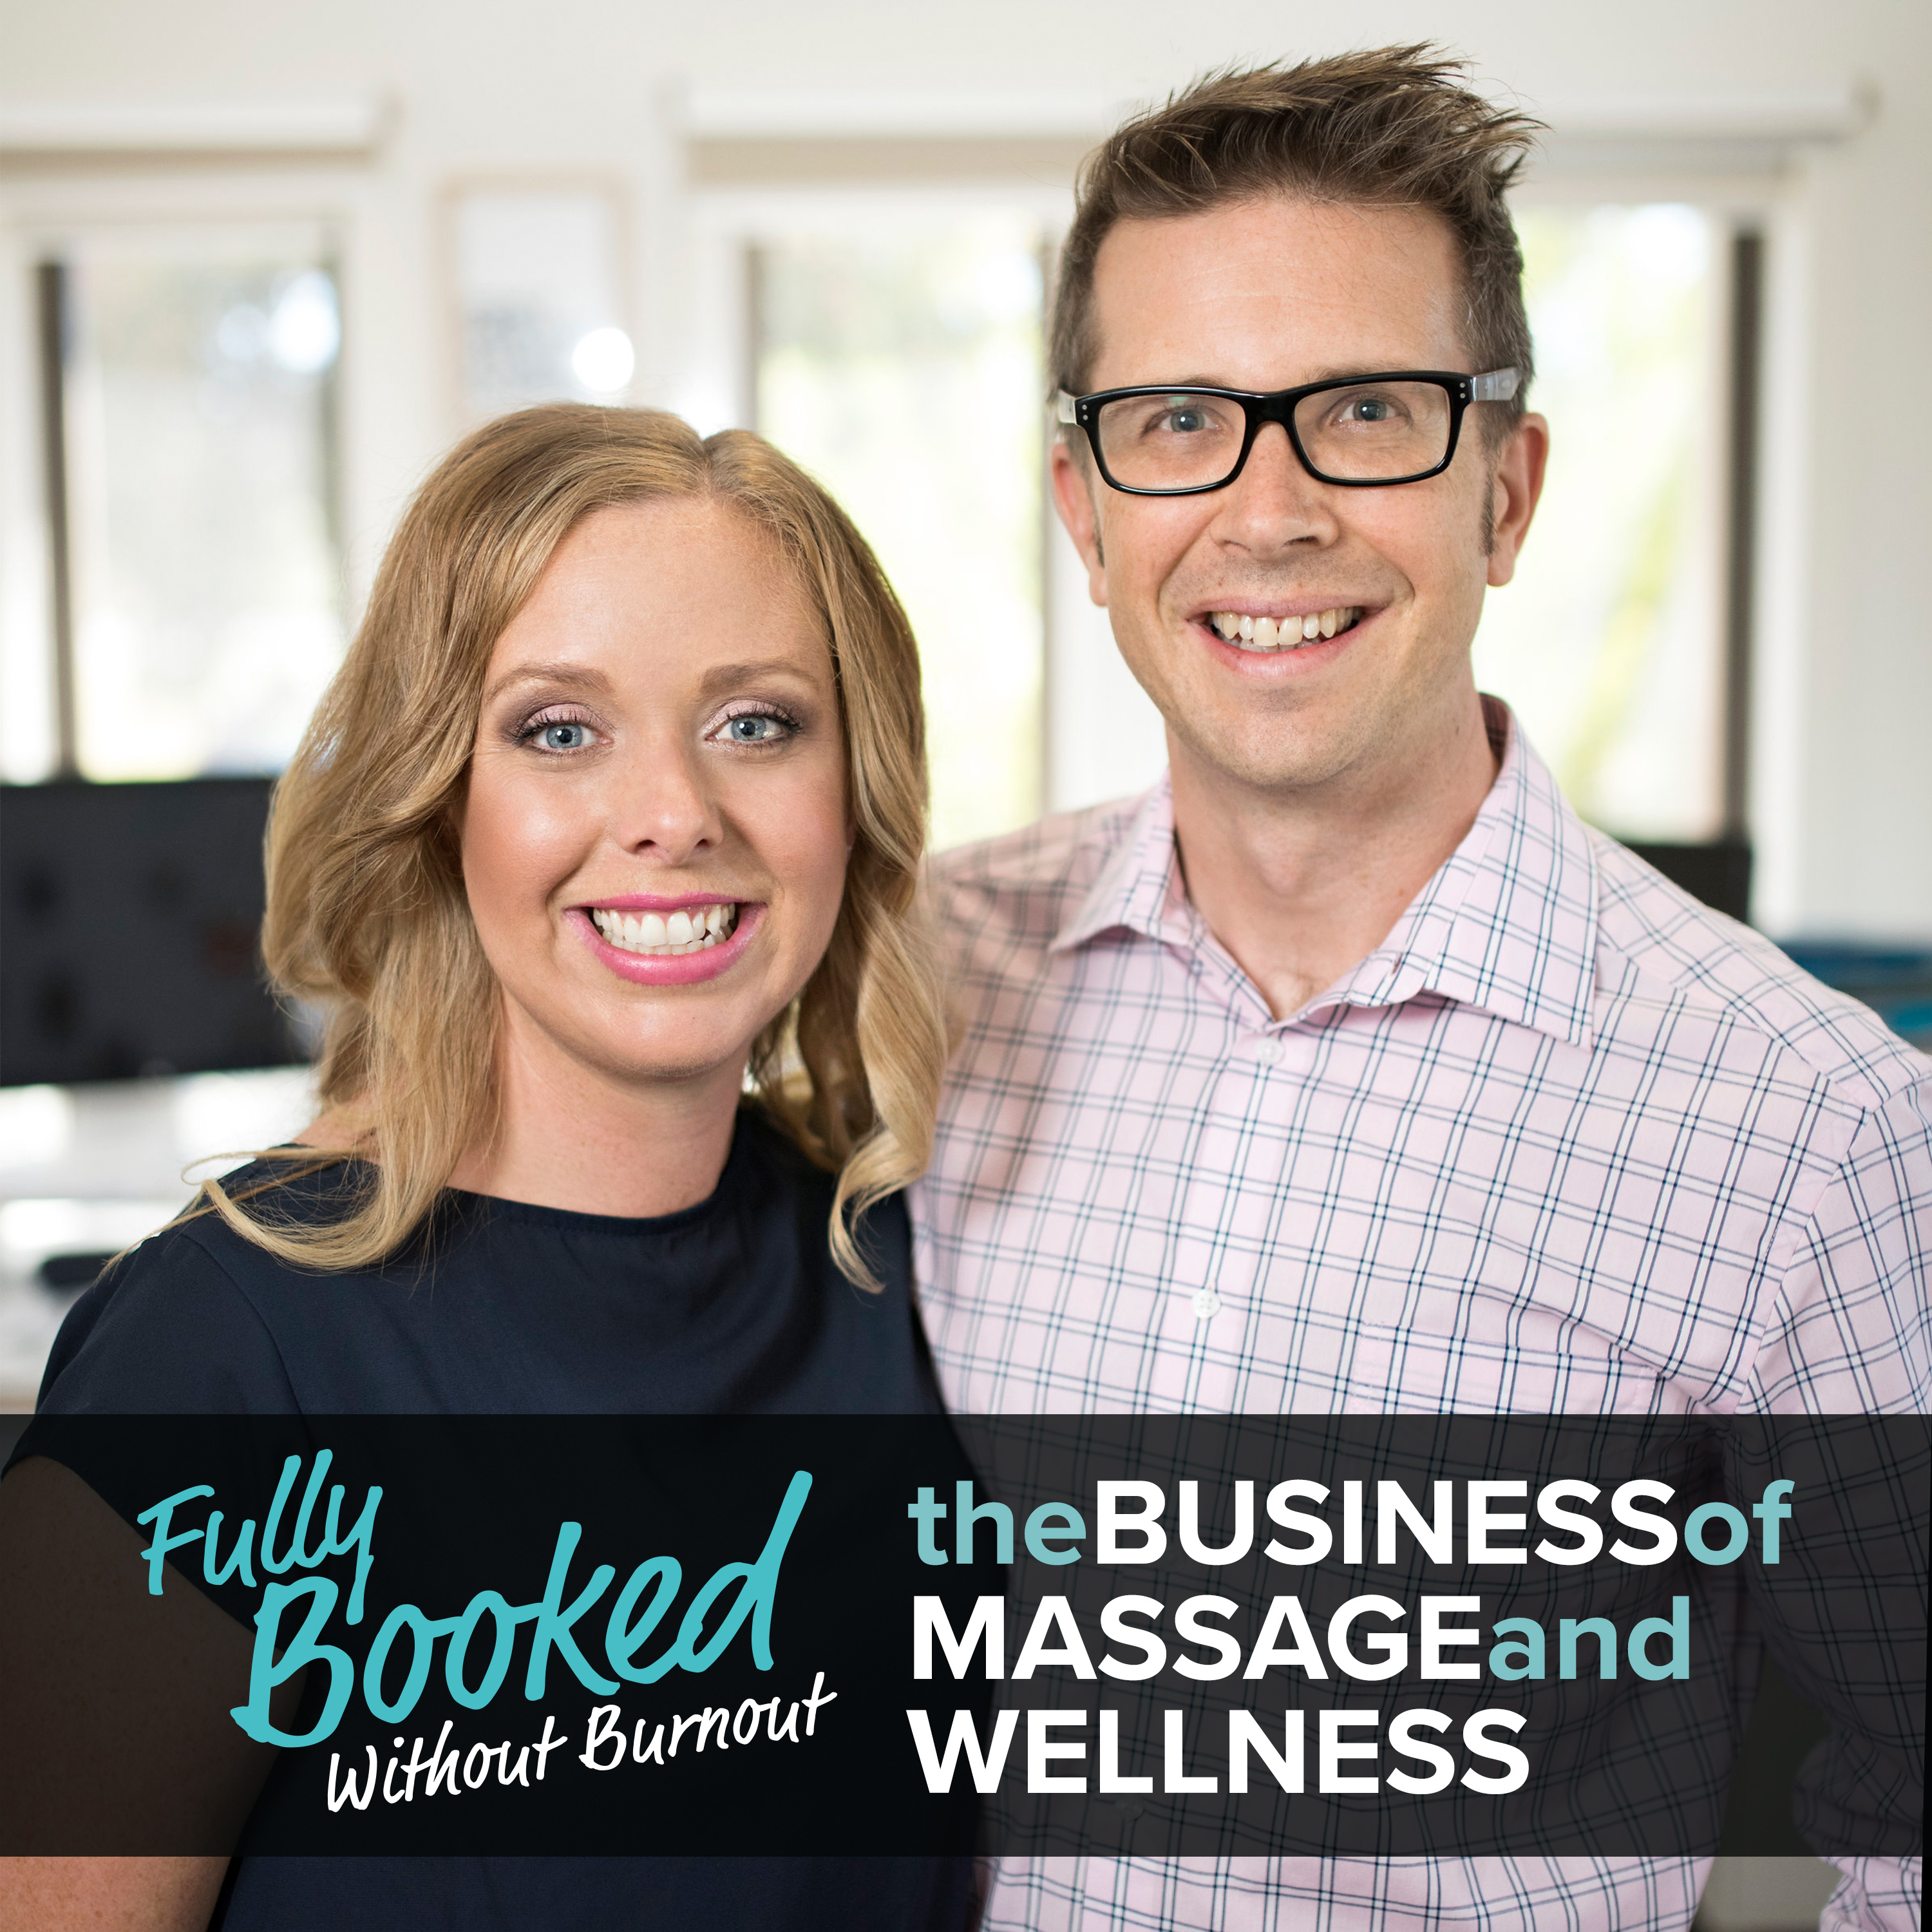 Fully Booked Without Burnout - The Business Of Massage And Wellness